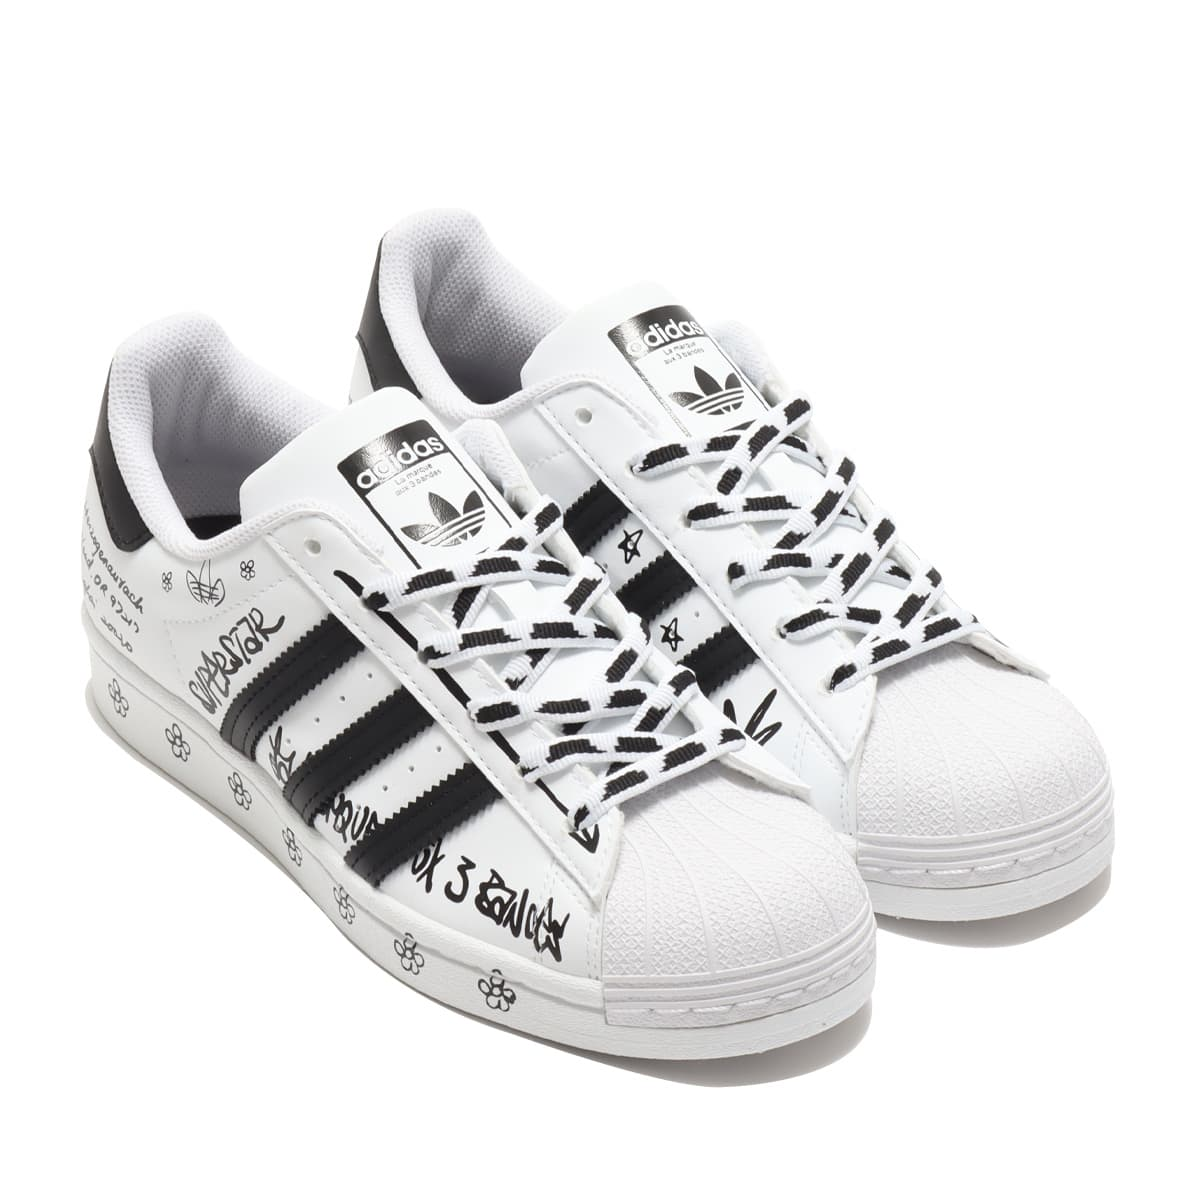 adidas SUPERSTAR FOOTWEAR WHITE/CORE BLACK/FOOTWEAR WHITE 21SS-I_photo_large